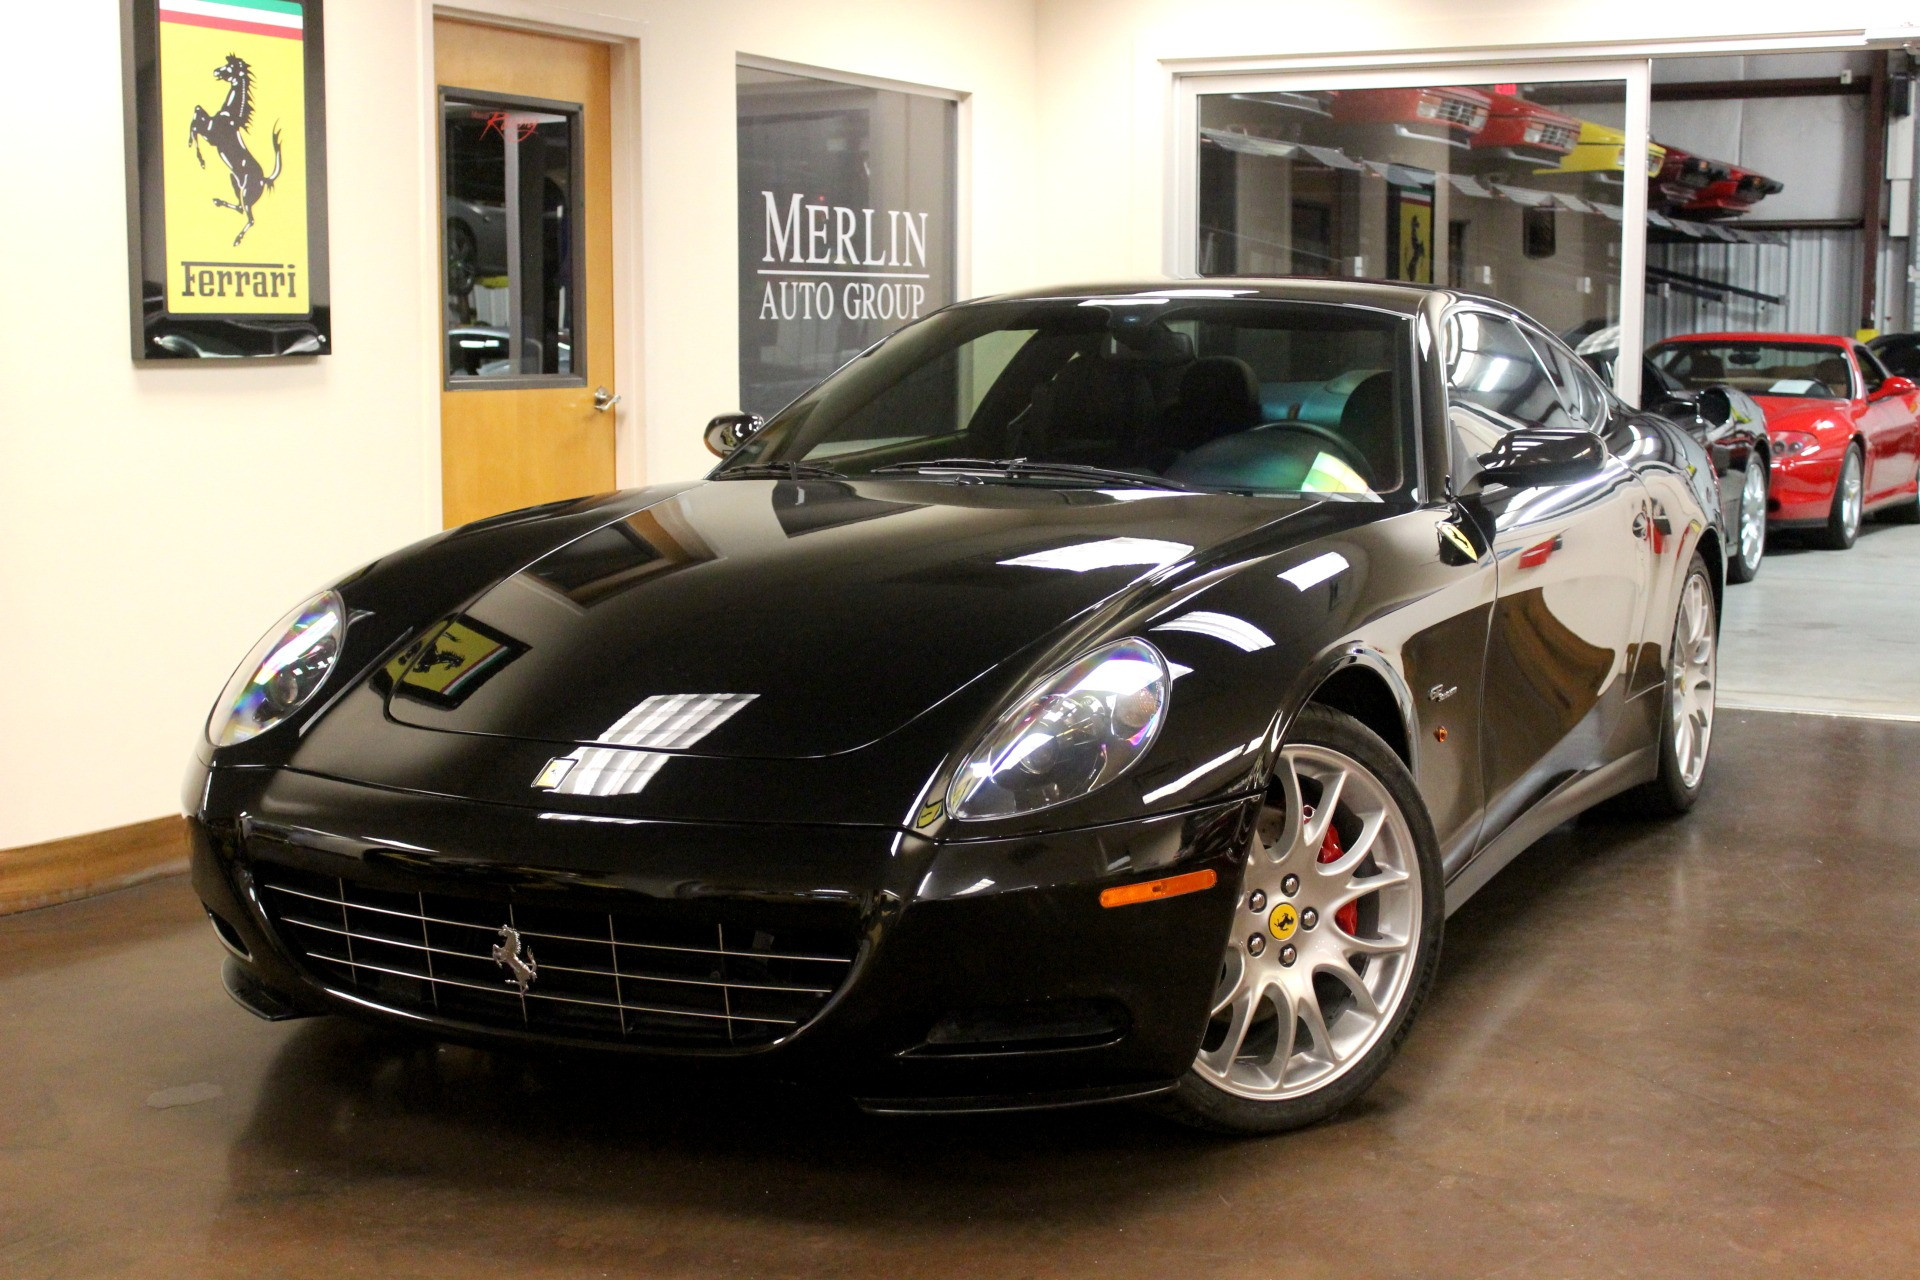 used 2006 ferrari 612 stock p3776 ultra luxury car from merlin auto group. Black Bedroom Furniture Sets. Home Design Ideas